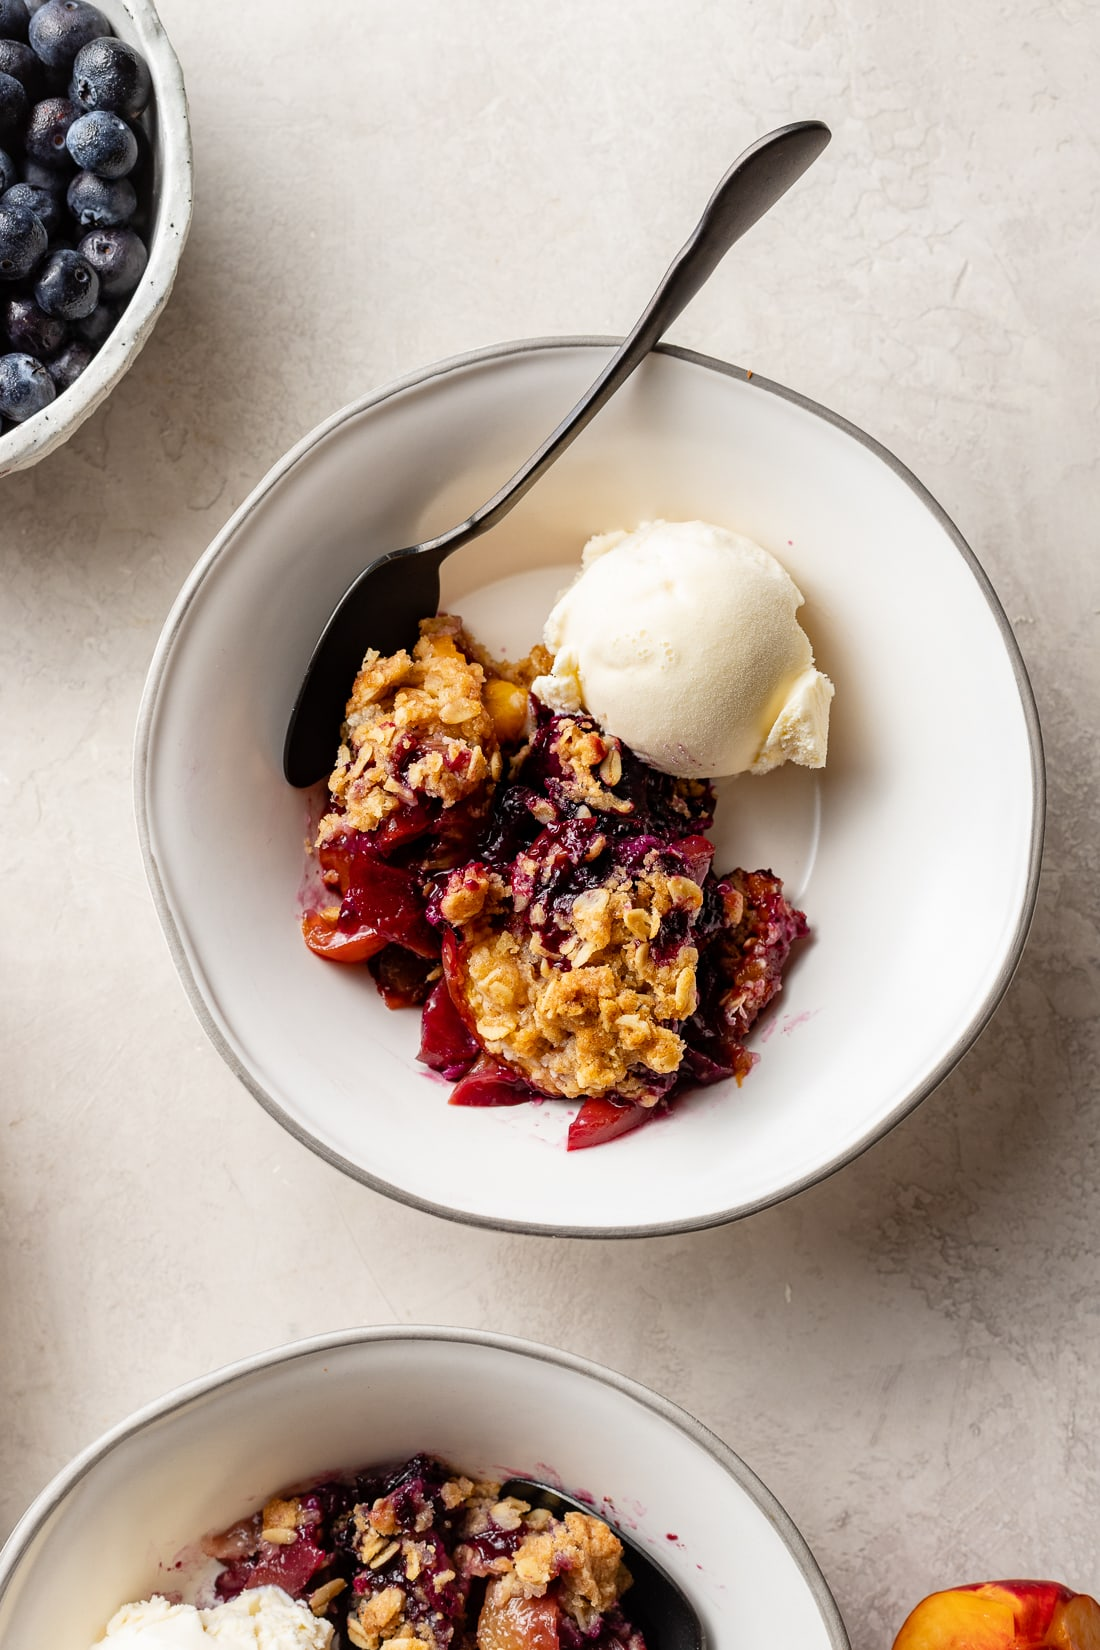 A serving bowl filled with blueberry nectarine crisp and a scoop of vanilla ice cream.